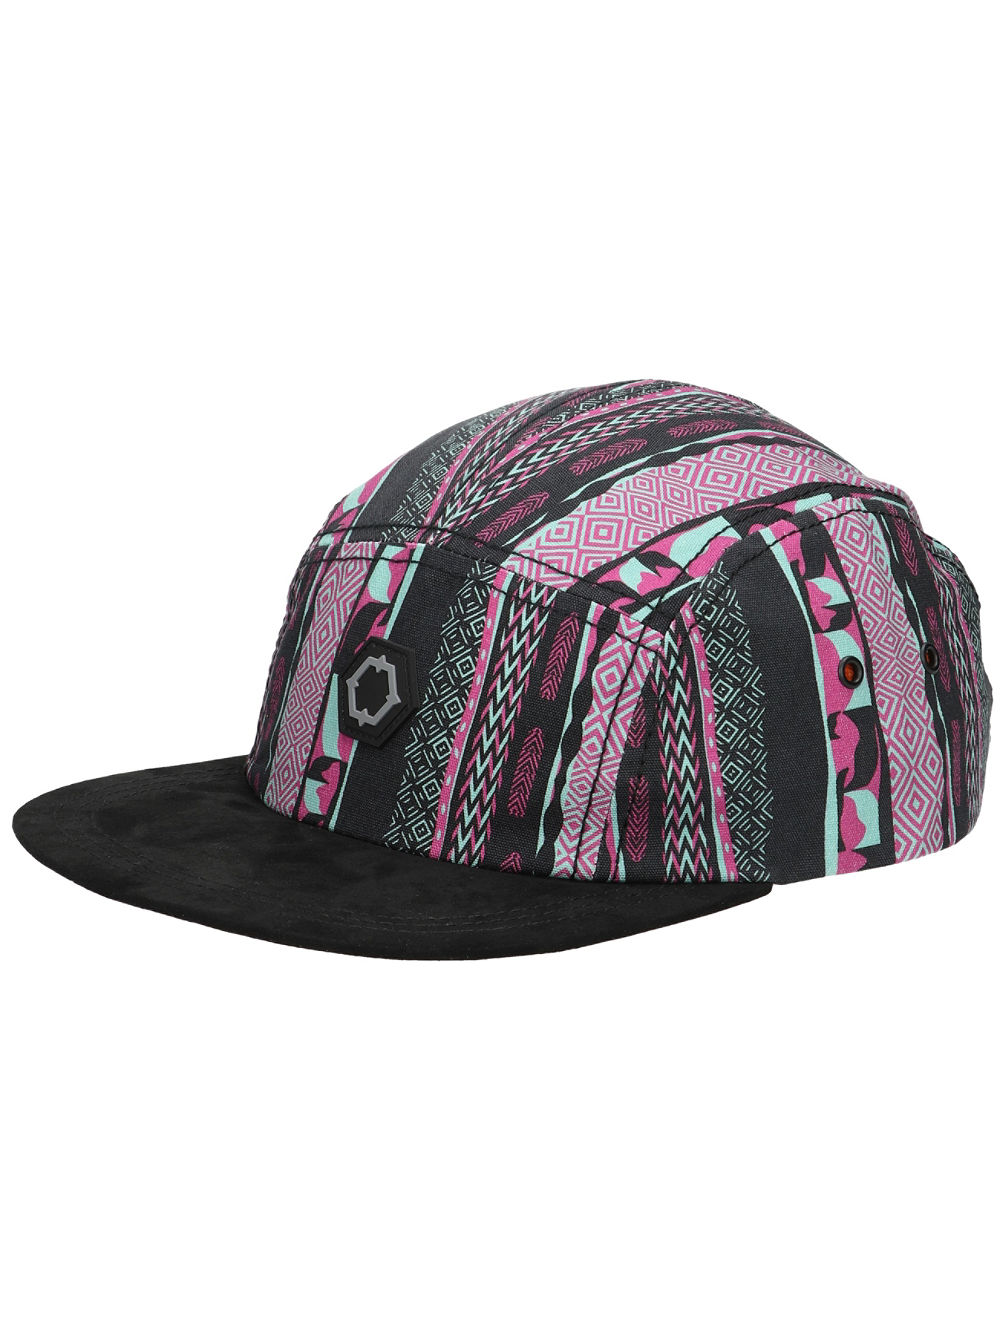 ea0b5730c1f Buy Empyre Notorious Retro 5 Panel Cap online at Blue Tomato